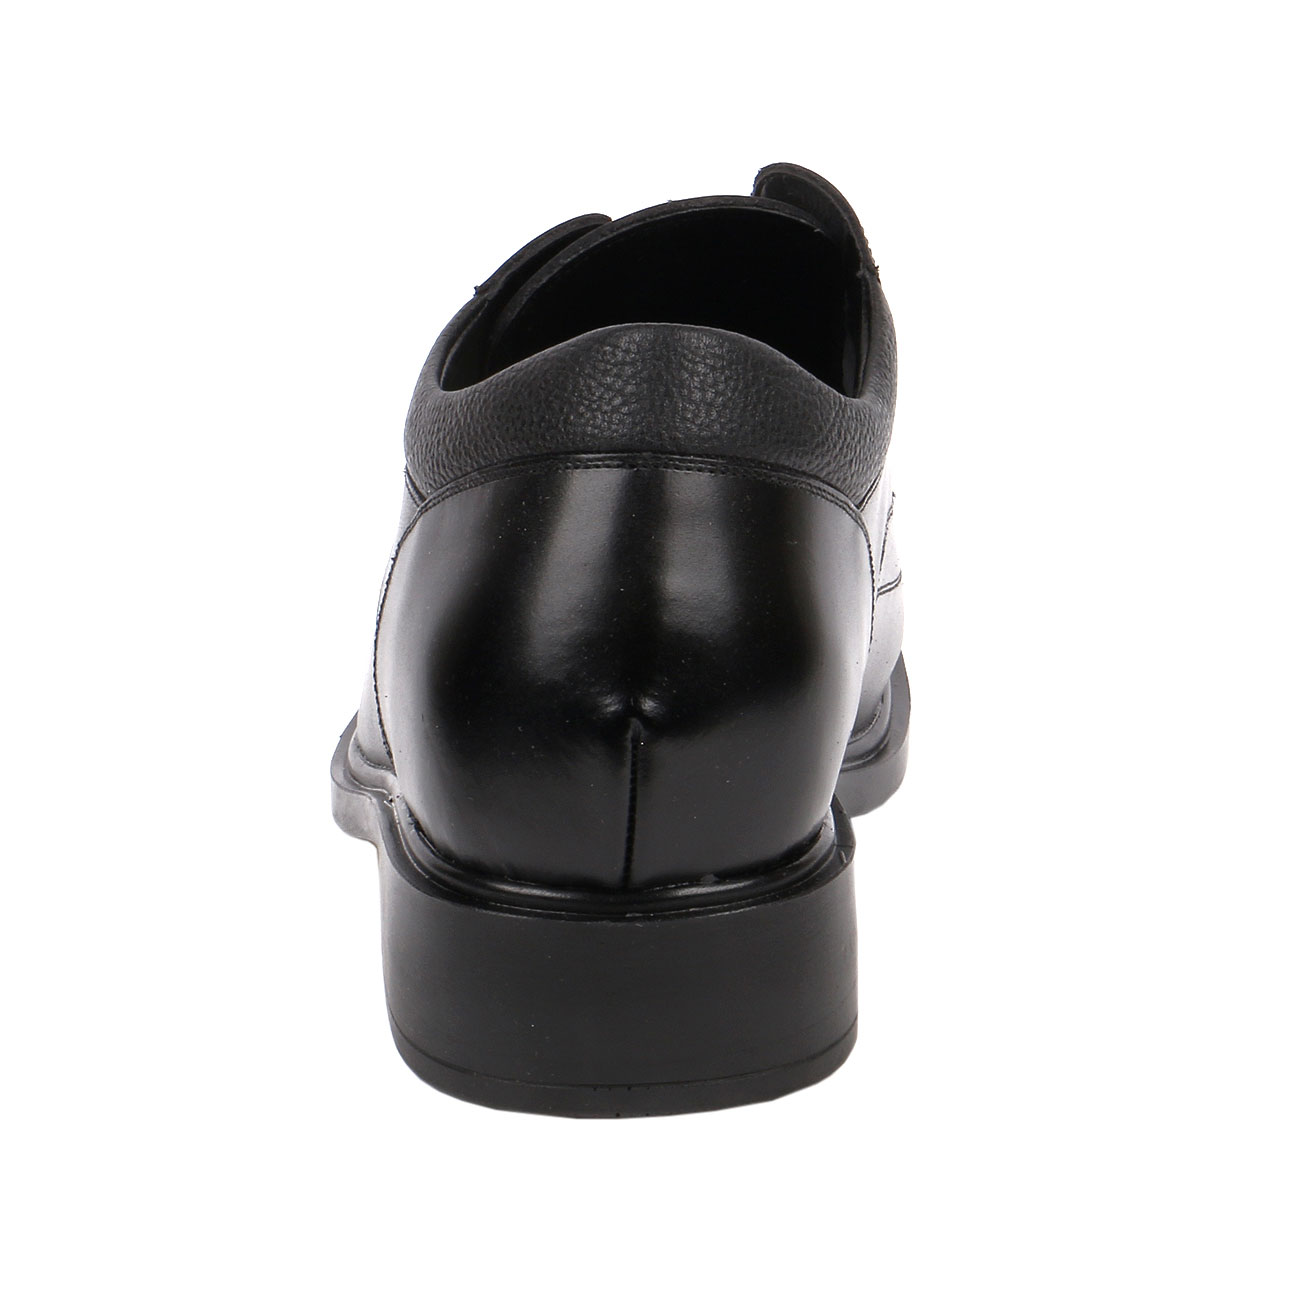 KL600, Men Black Dress Square Shoe Height lighting You for Success to the Job Interview-3